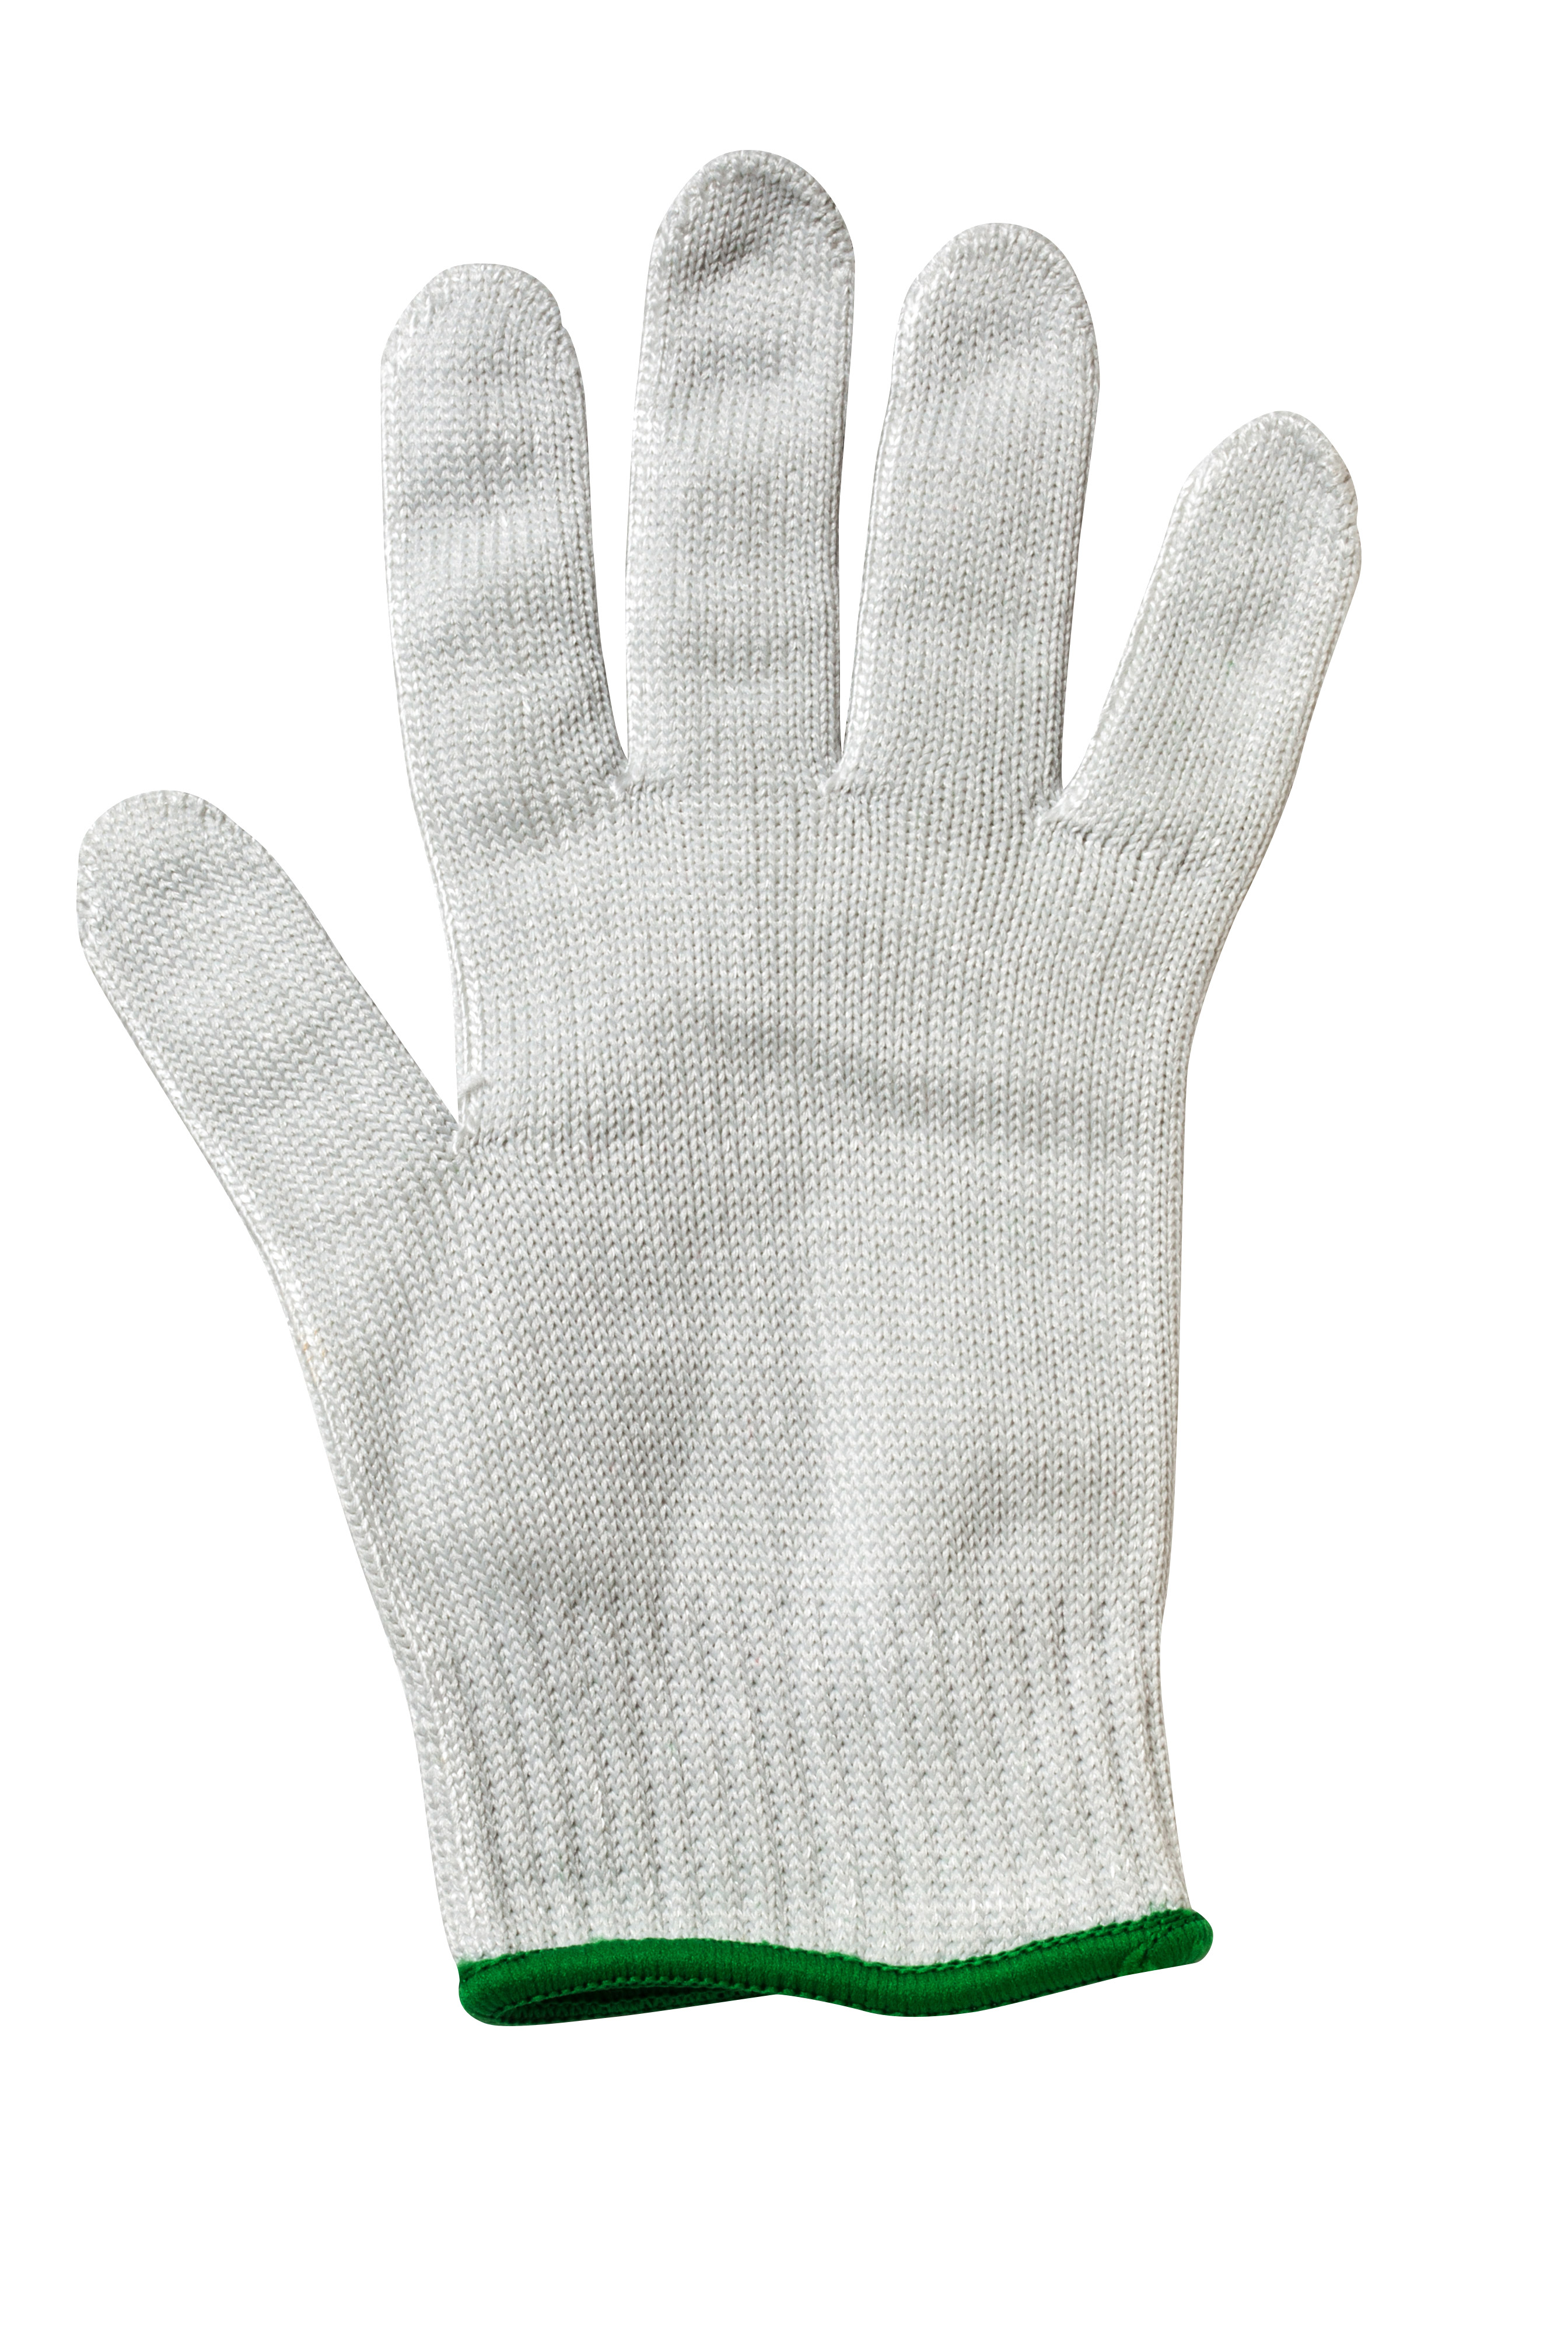 Mercer Culinary M33413M glove, cut resistant